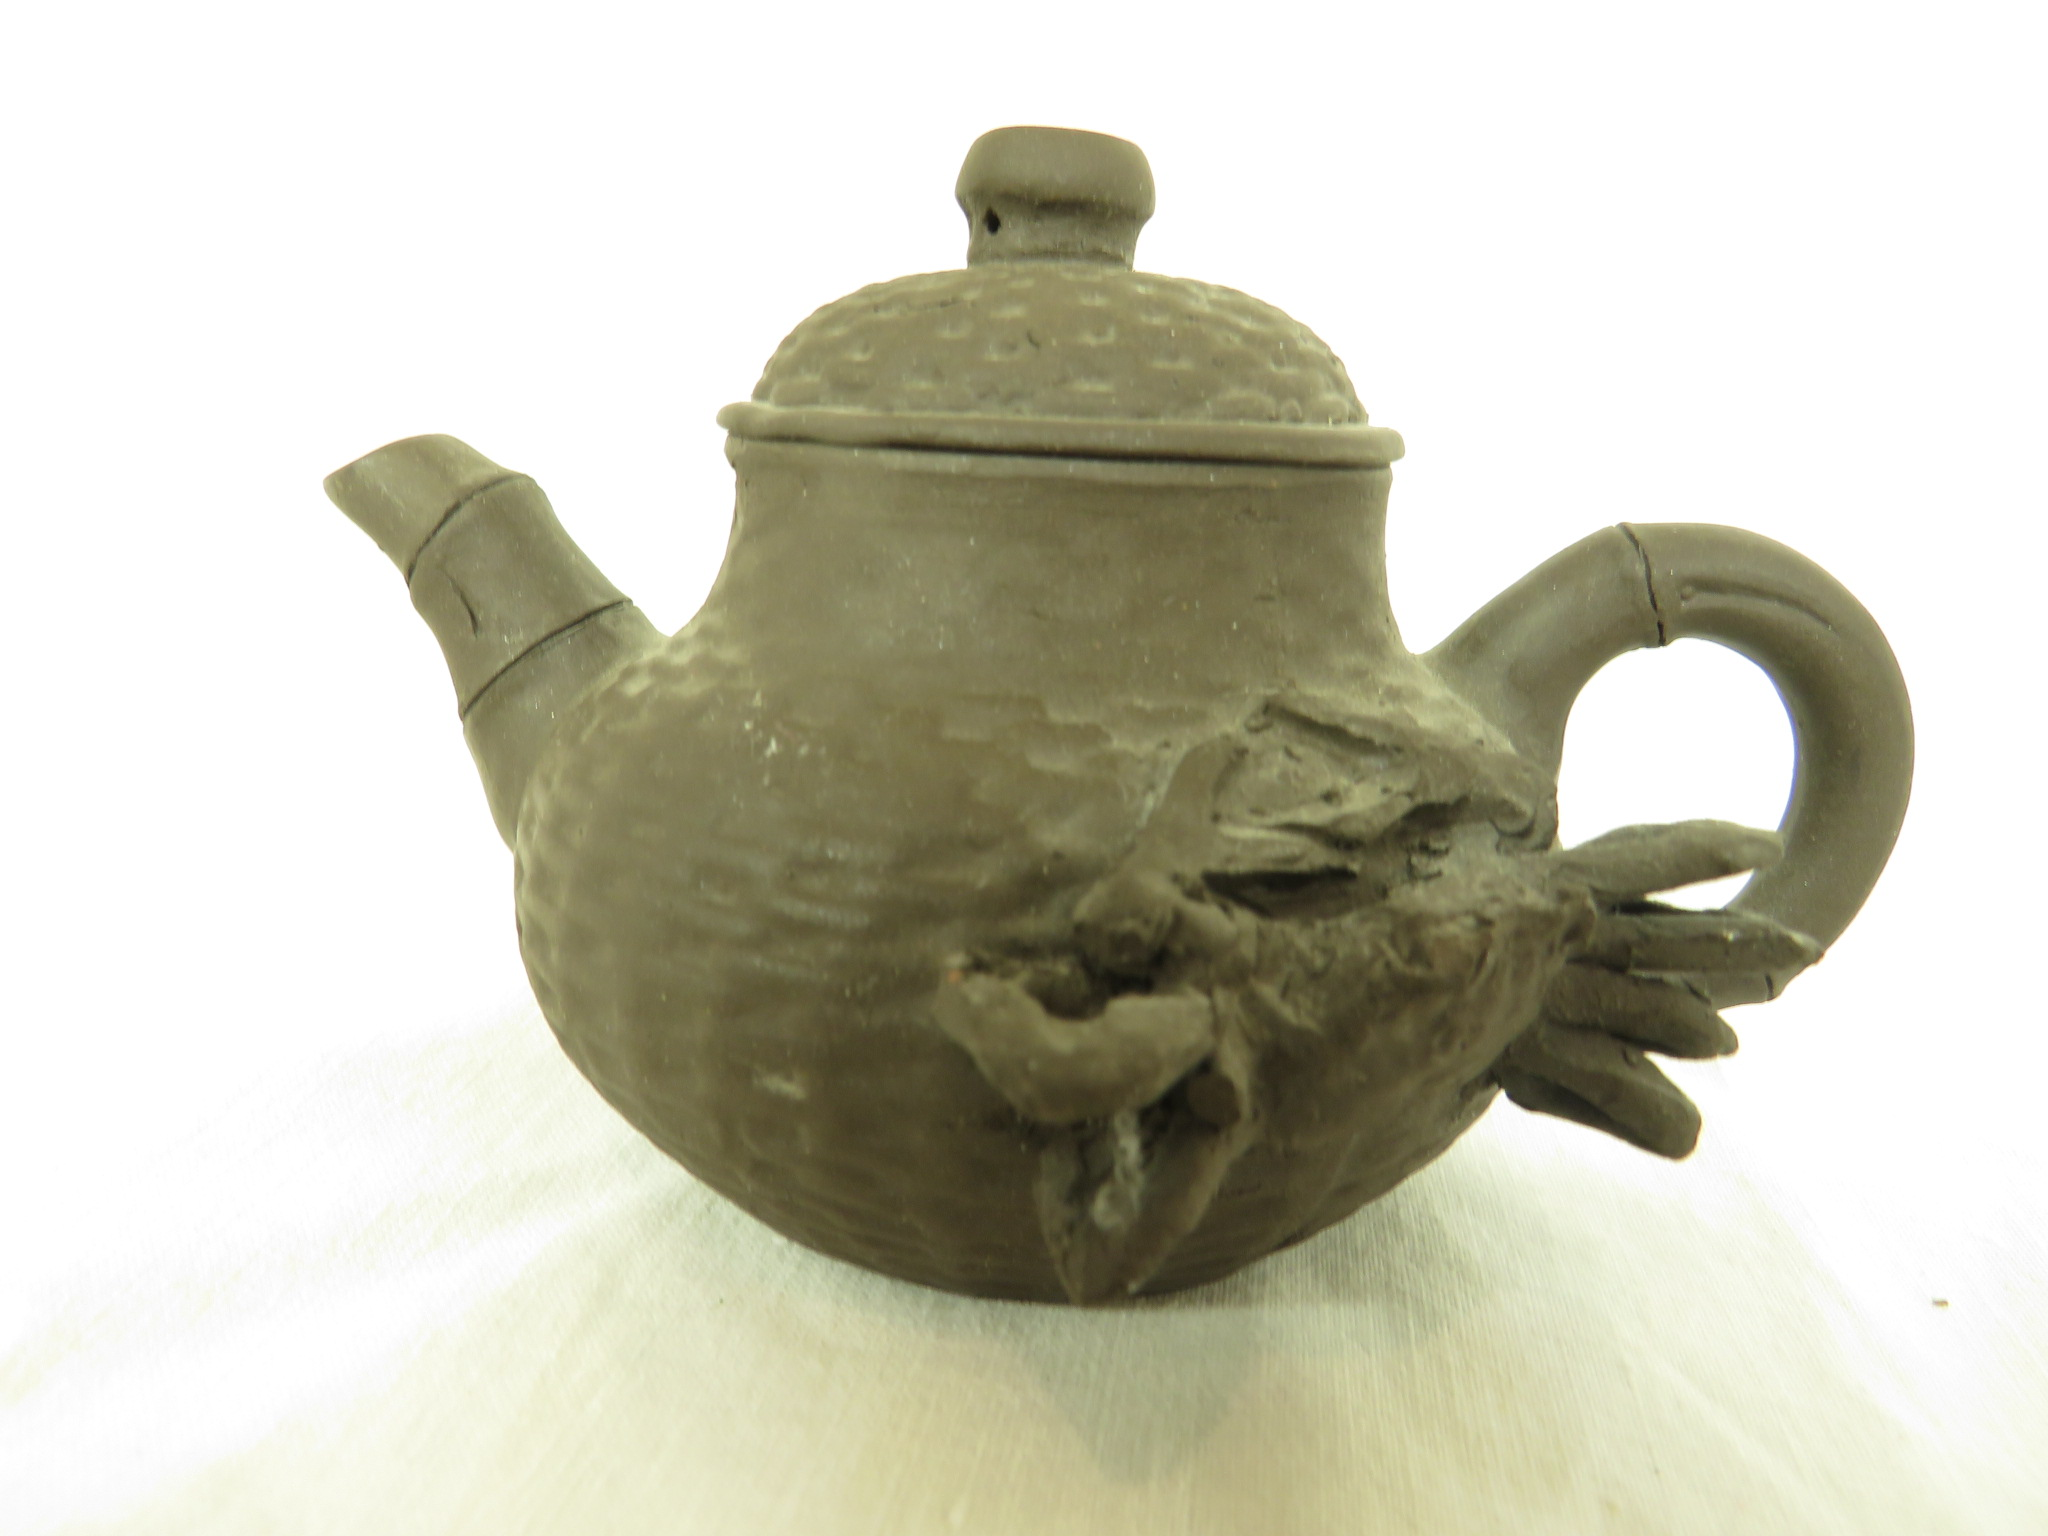 Lot 85 - Four Far Eastern ceramics - a Yixing type pottery teapot with impressed marks to base, within the